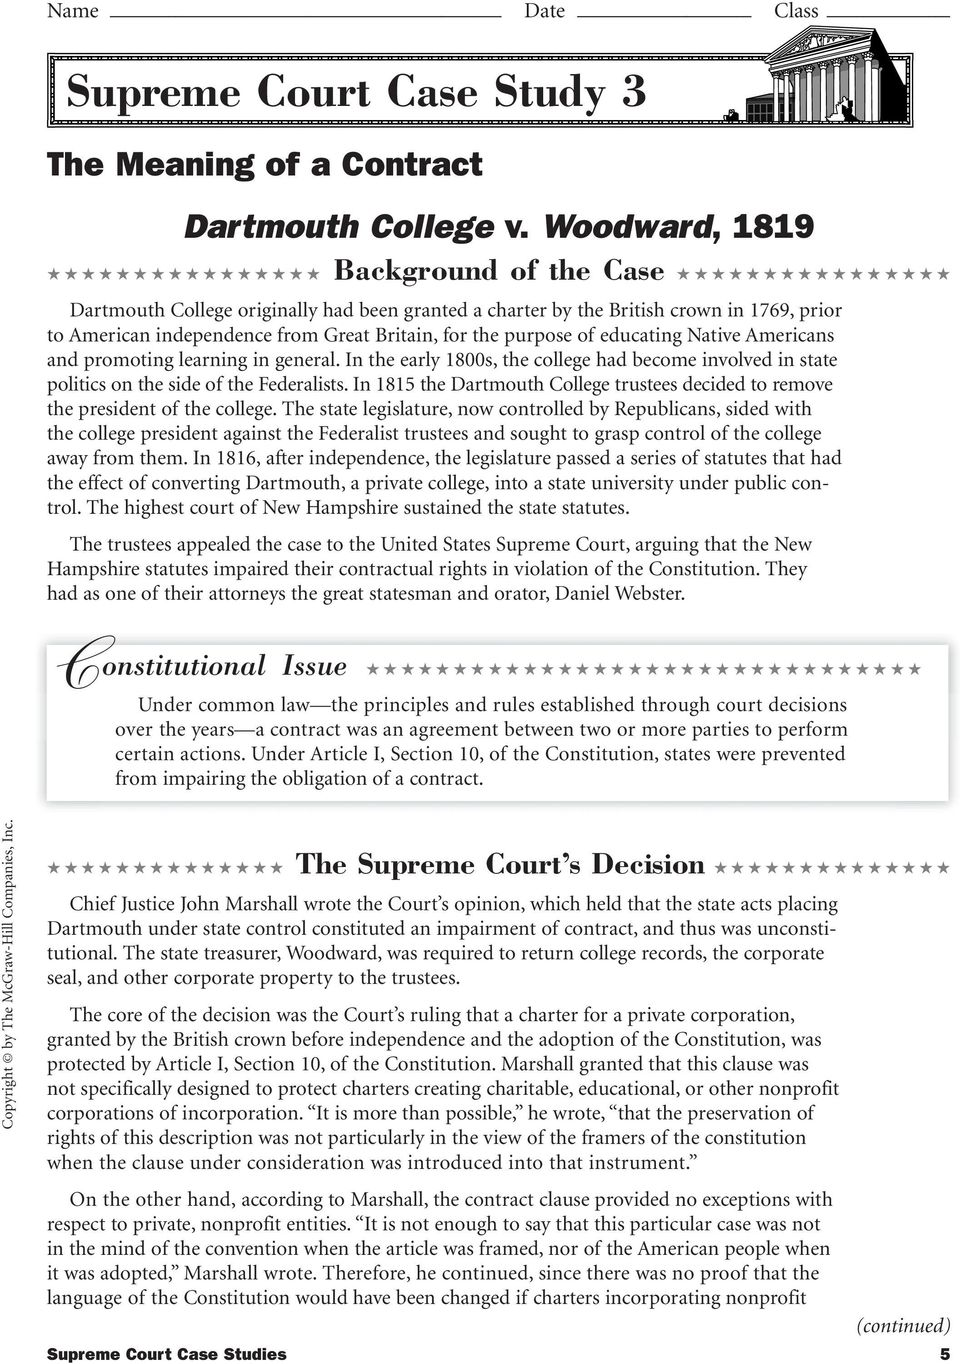 supreme court cases essay This essay has been submitted by a law student this is not an example of the work written by our professional essay writers supreme court case bethel school v fraser.